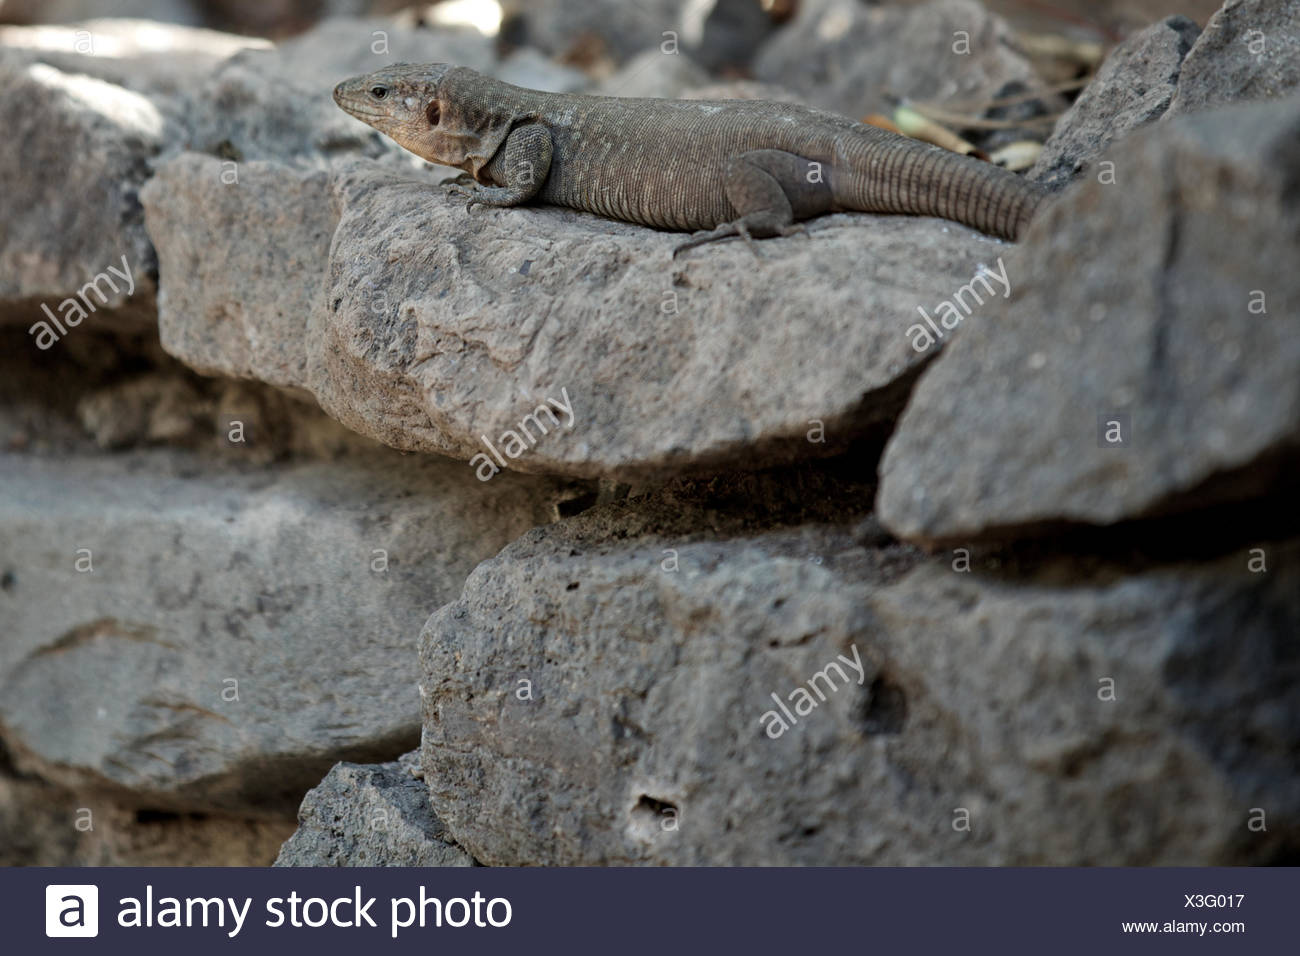 lizard on rock at zoo. animal, swift, reptile, alert. Stock Photo